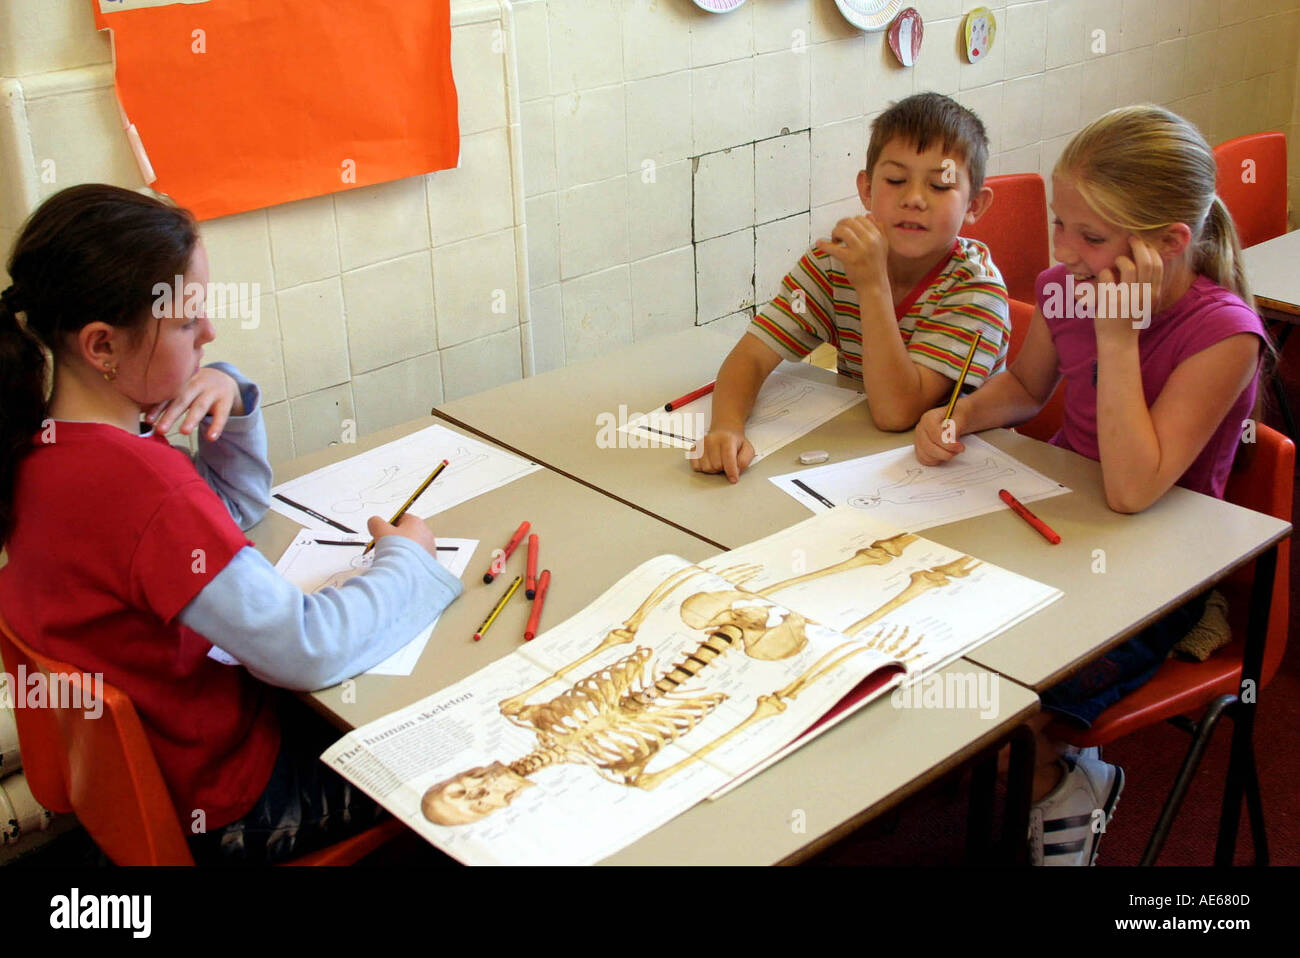 Primary school children 7 to 8 year old in anatomy class - Stock Image